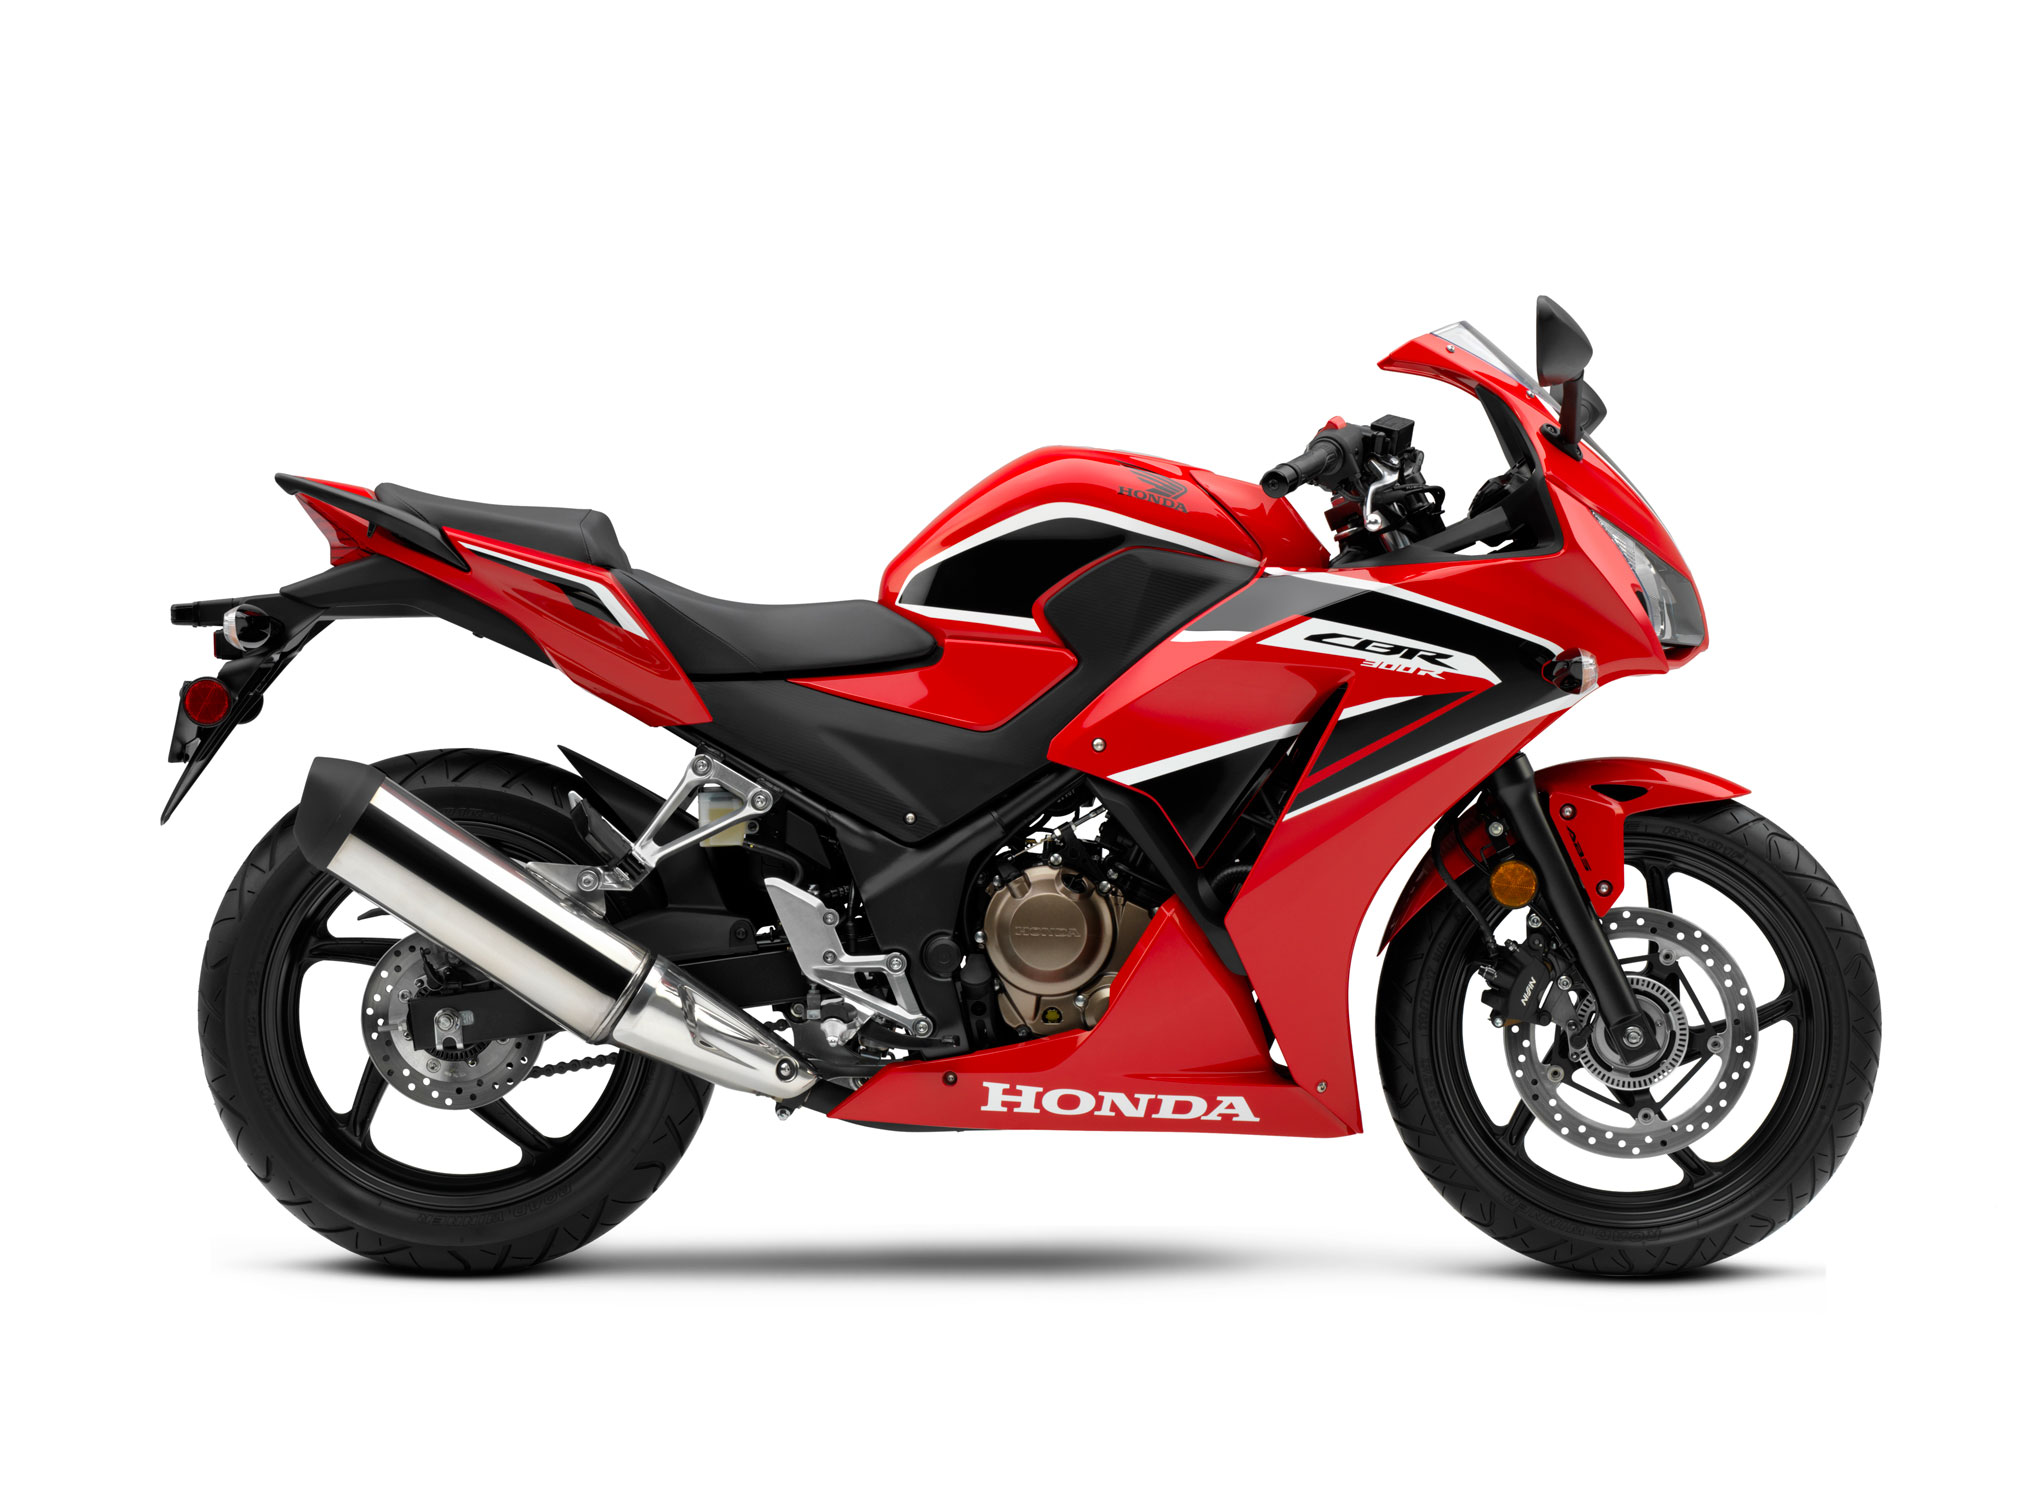 2020 honda cbr300r abs guide • total motorcycle